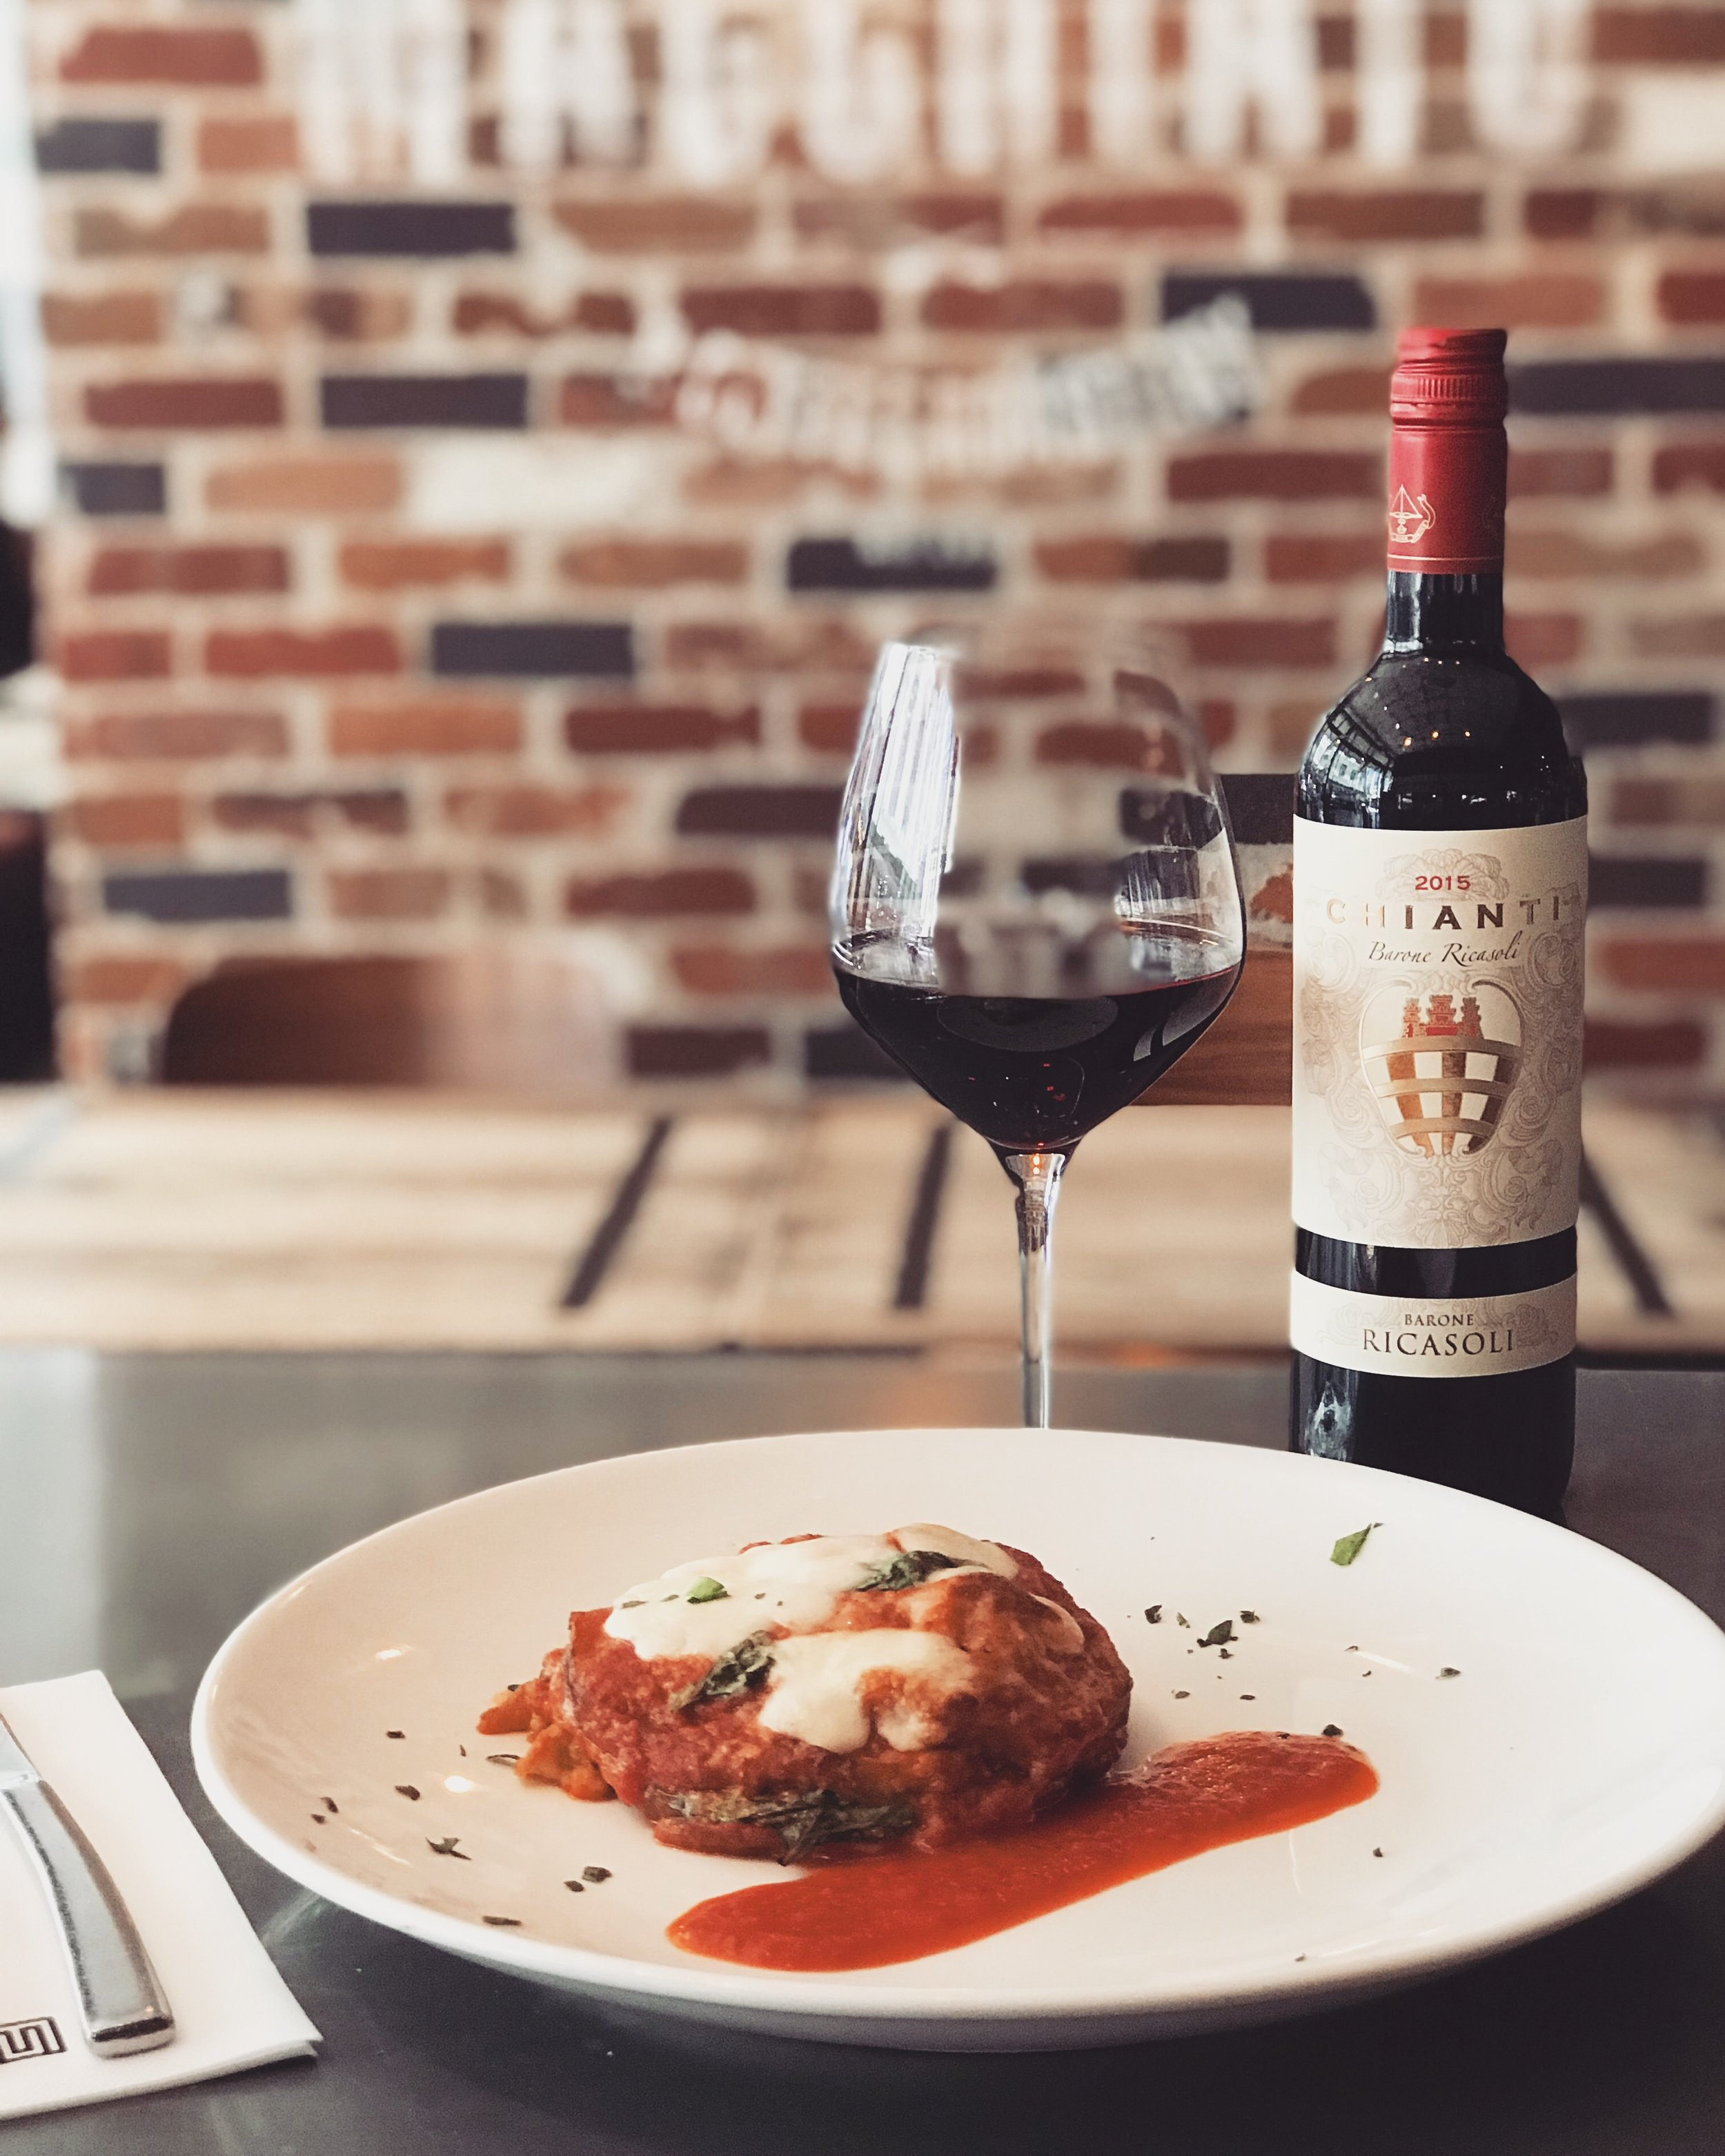 13-19 December - Nonna's treat: wood baked eggplant parmigiana, with napoletana sauce, fior di latte mozzarella, extra virgin olive oil and fresh basil.Perfectly matched with our Barone Ricasoli Chianti.